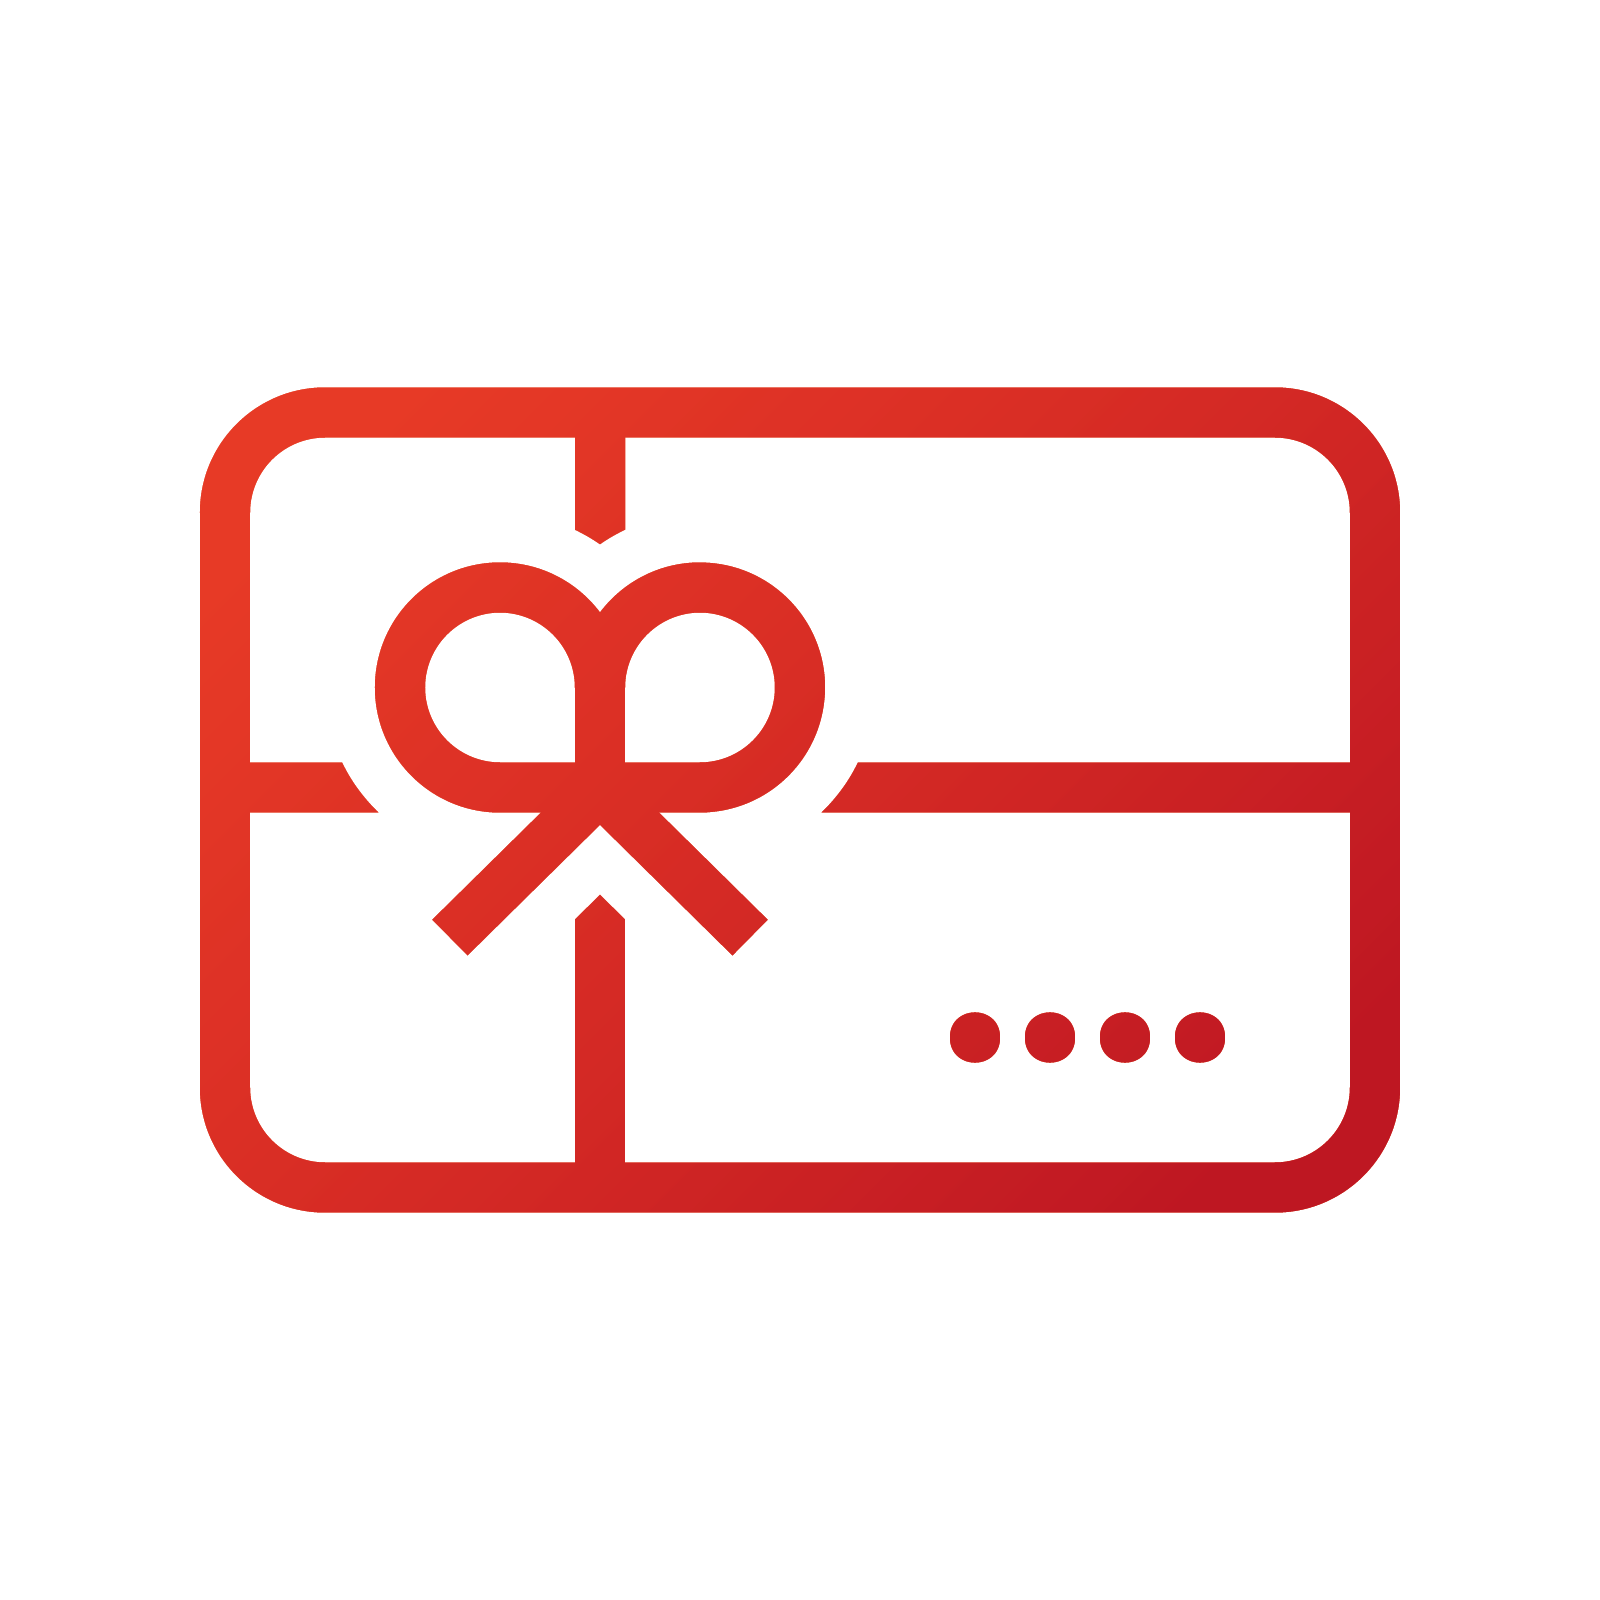 Icon to demonstrate the proofing of gift card artwork